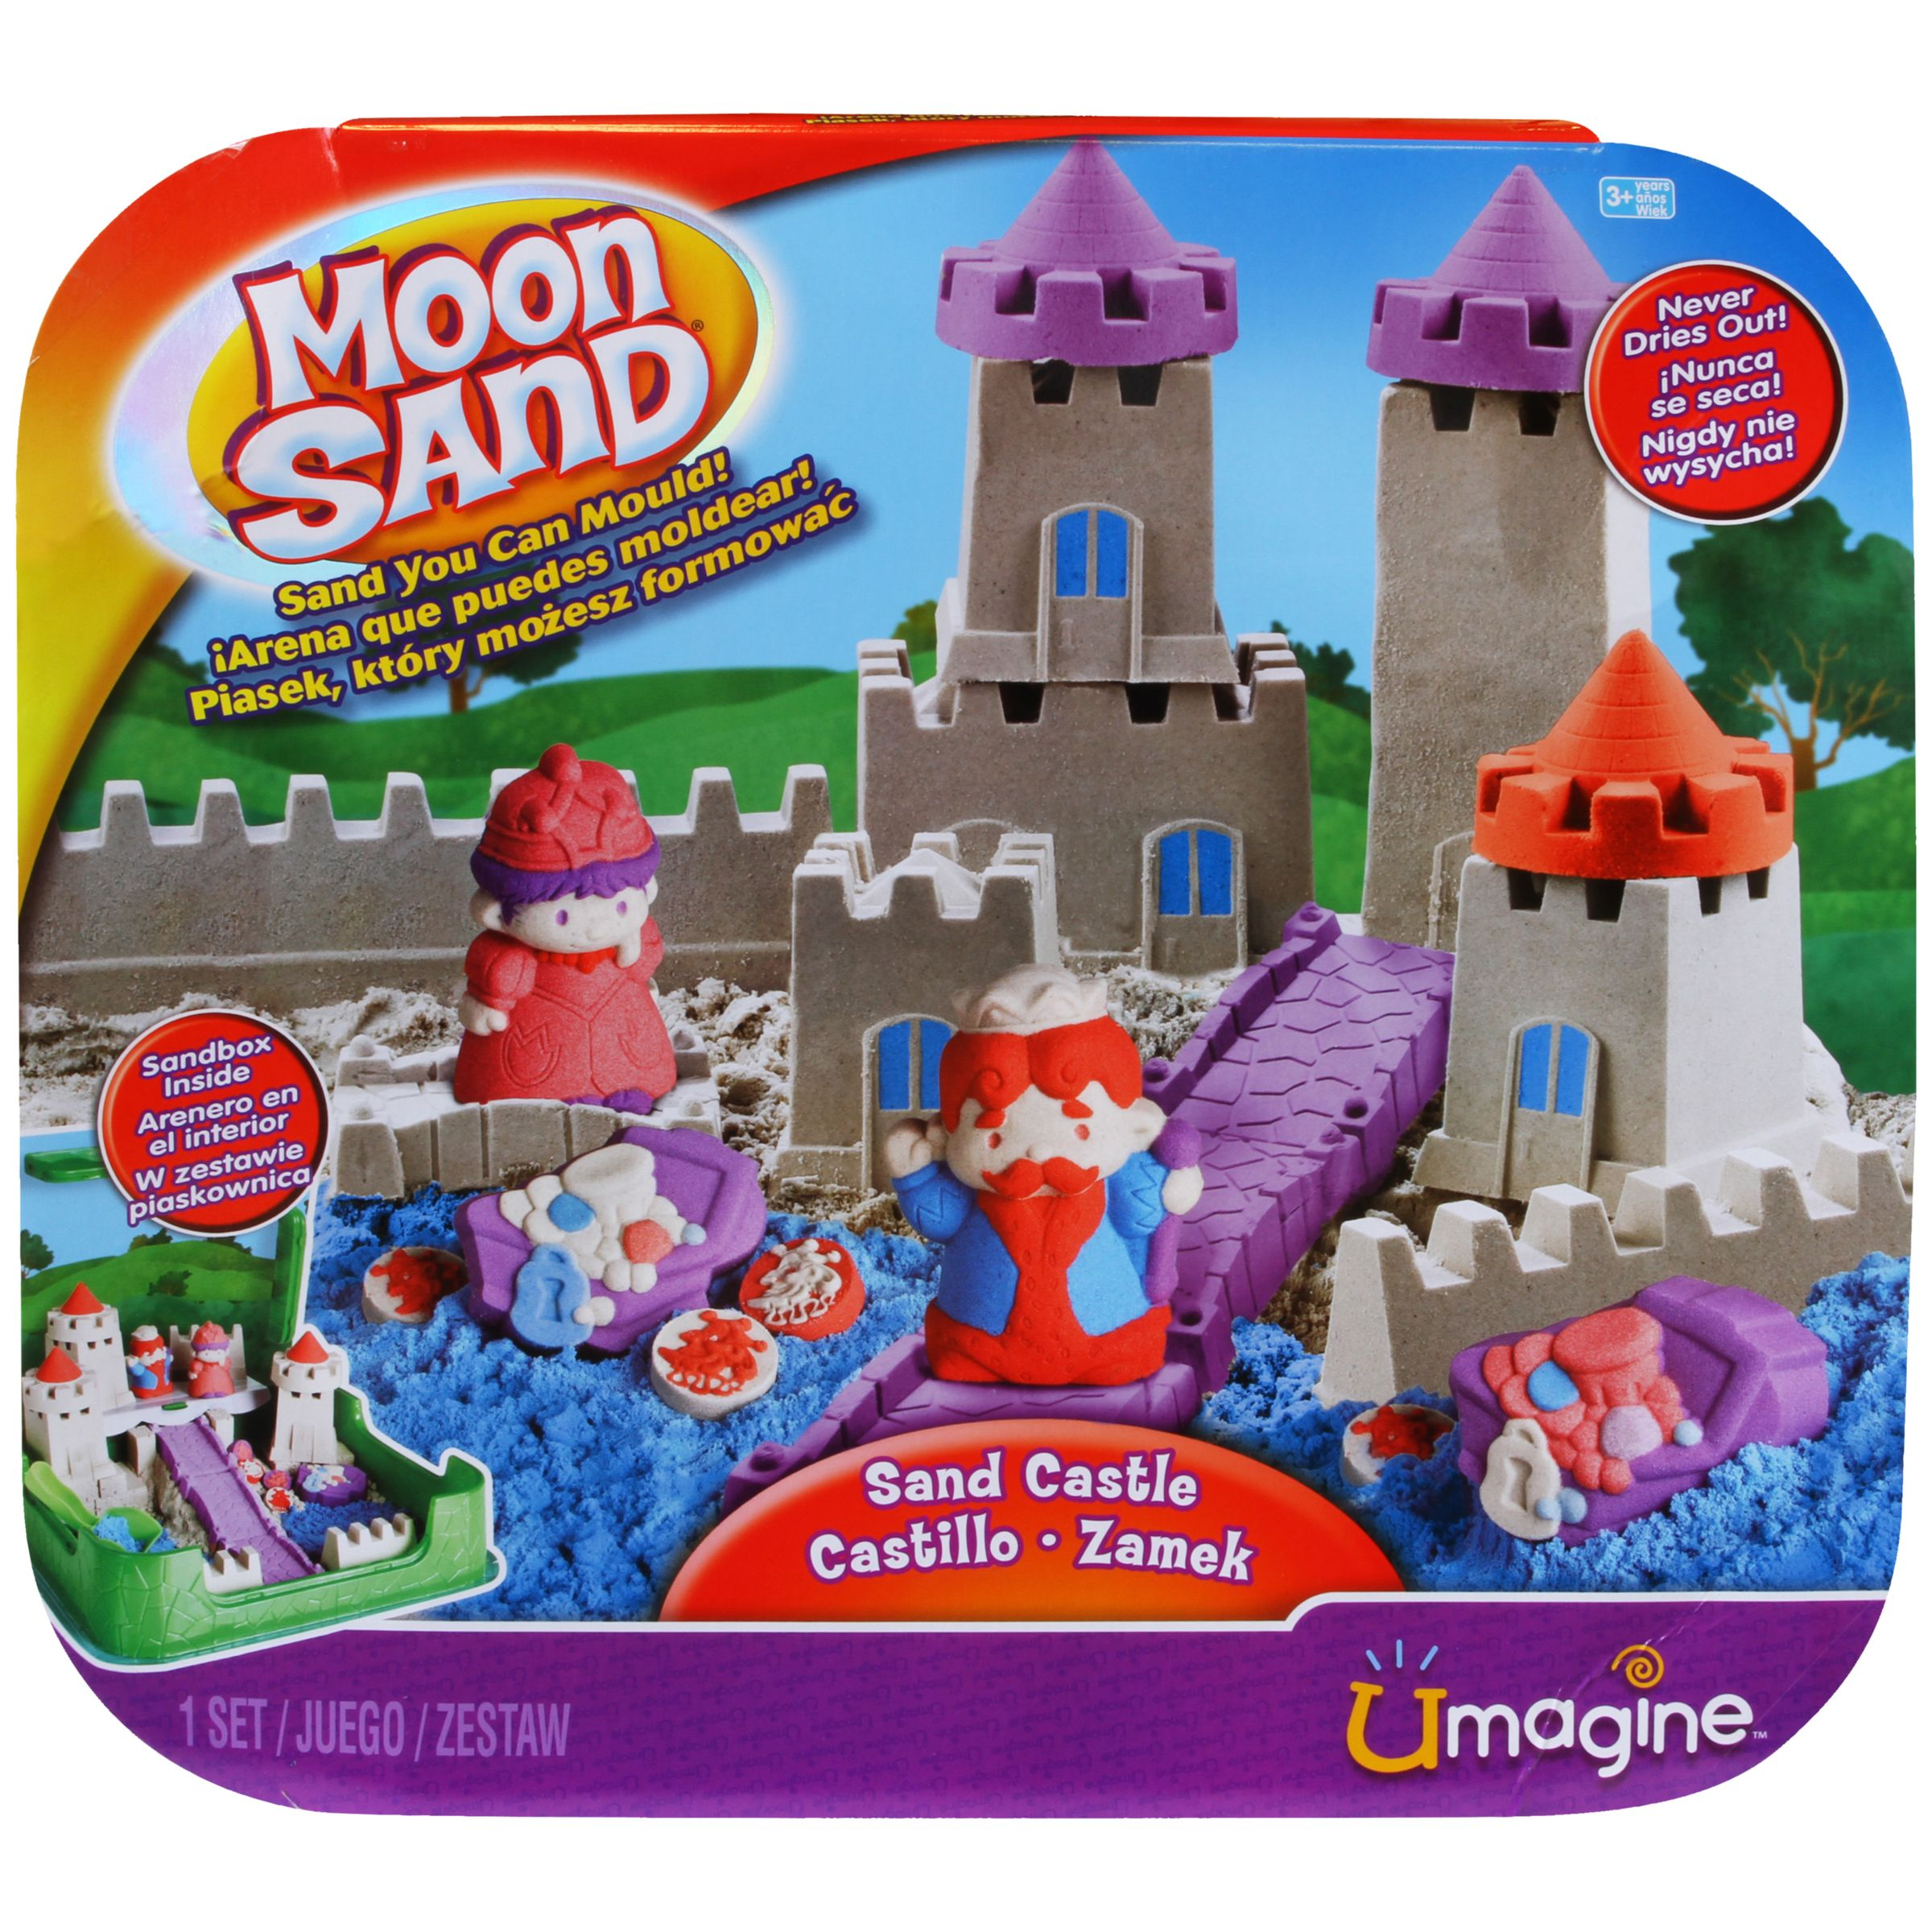 Moon Sand Sandcastle